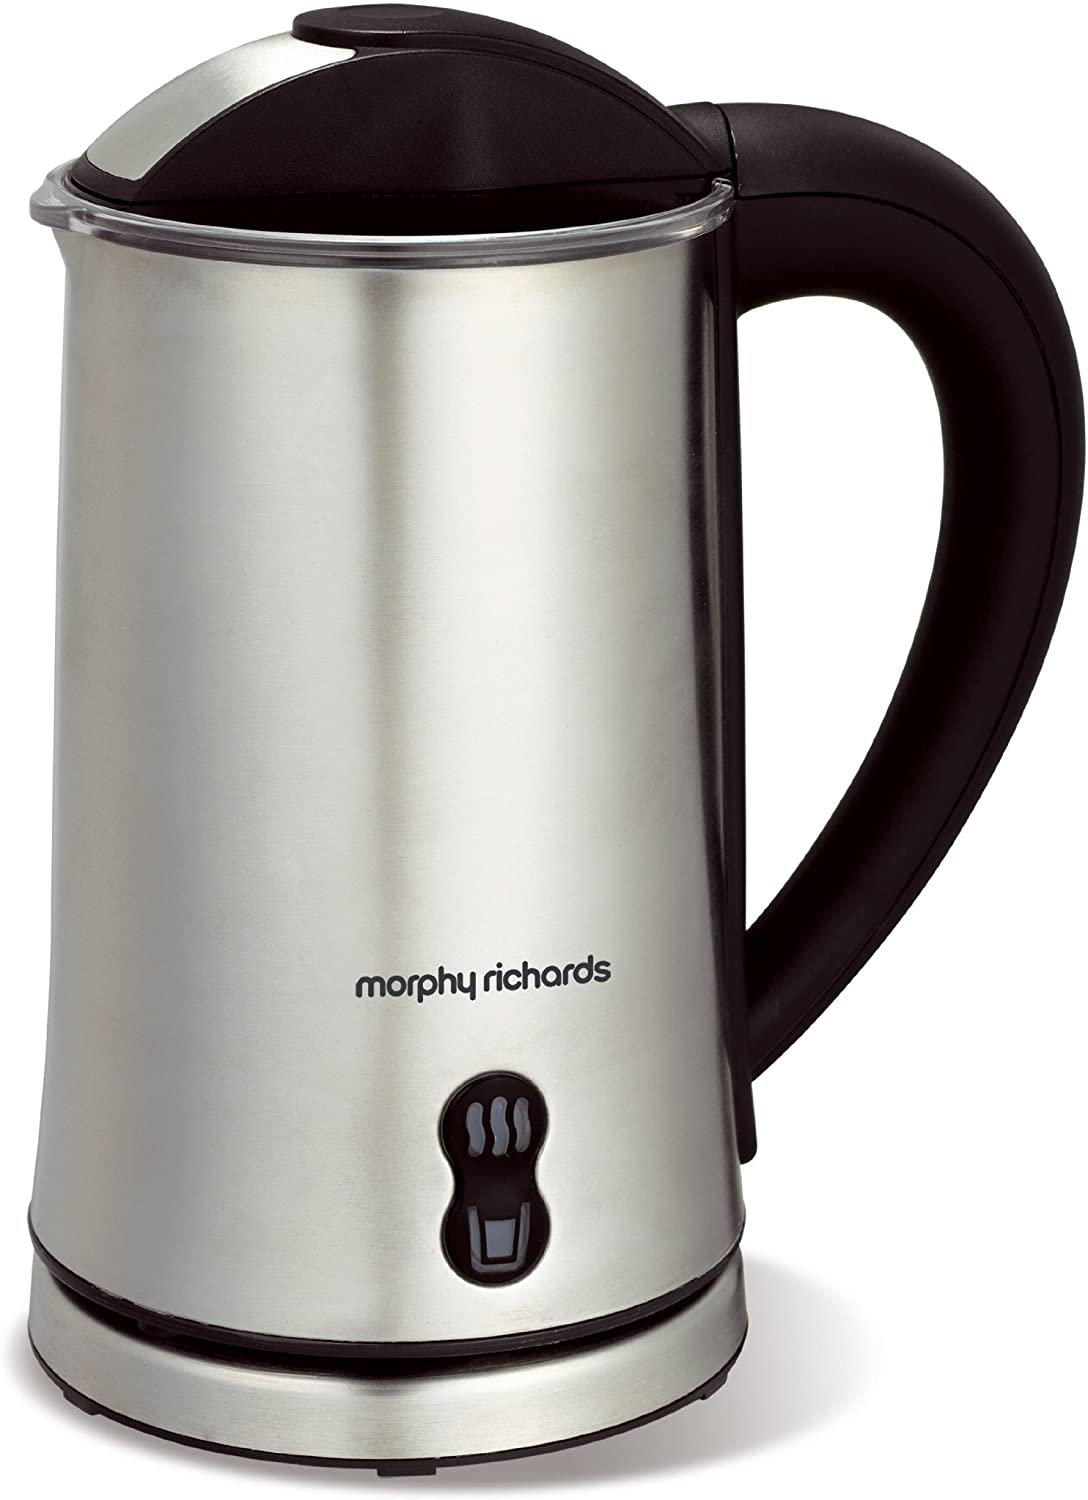 Morphy Richards Meno 47560 Milk Frother Stainless Steel